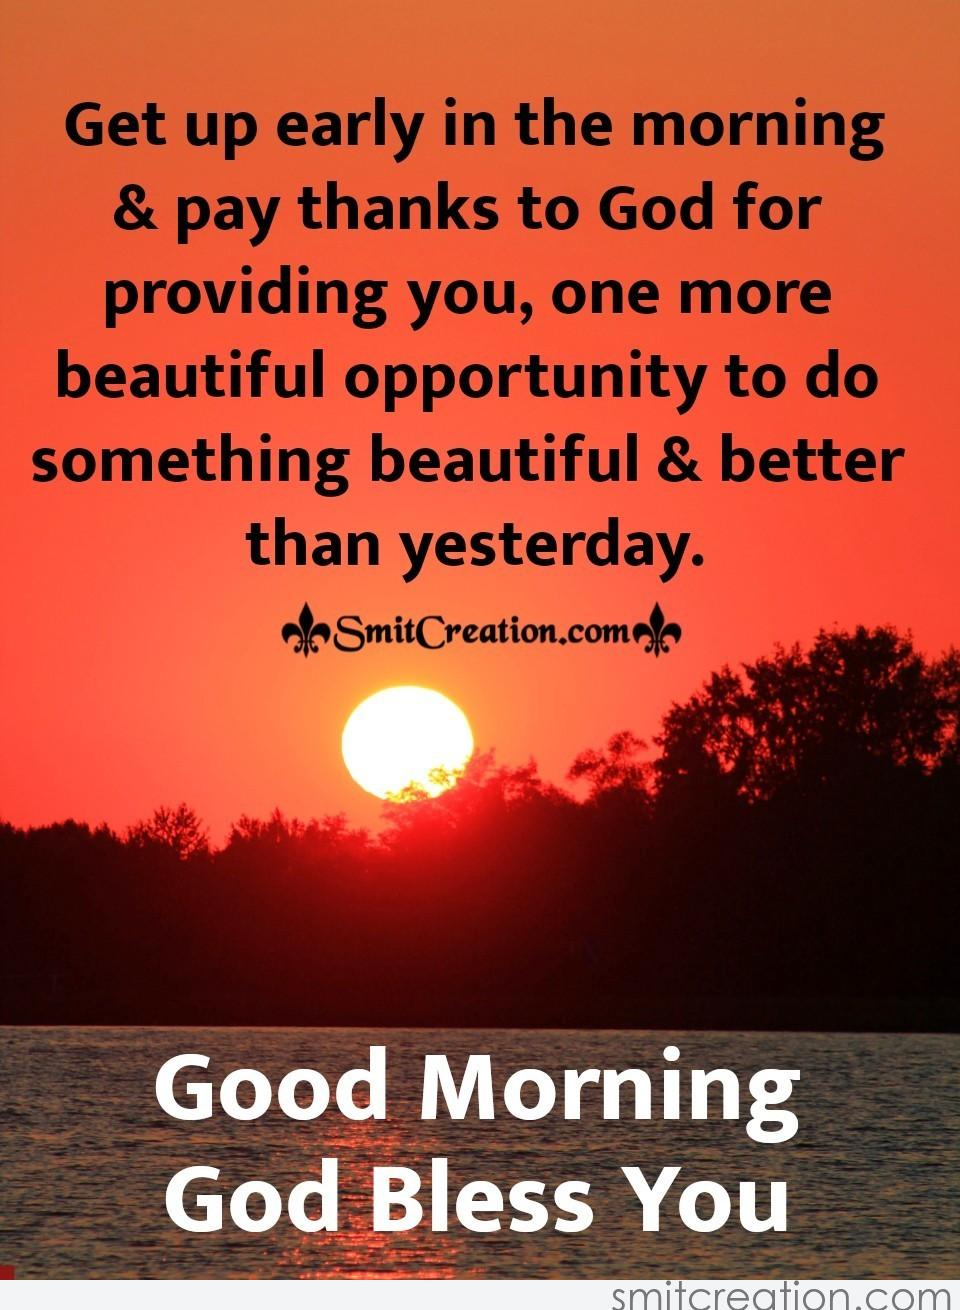 Good Morning Pay Thanks To God Smitcreation Com